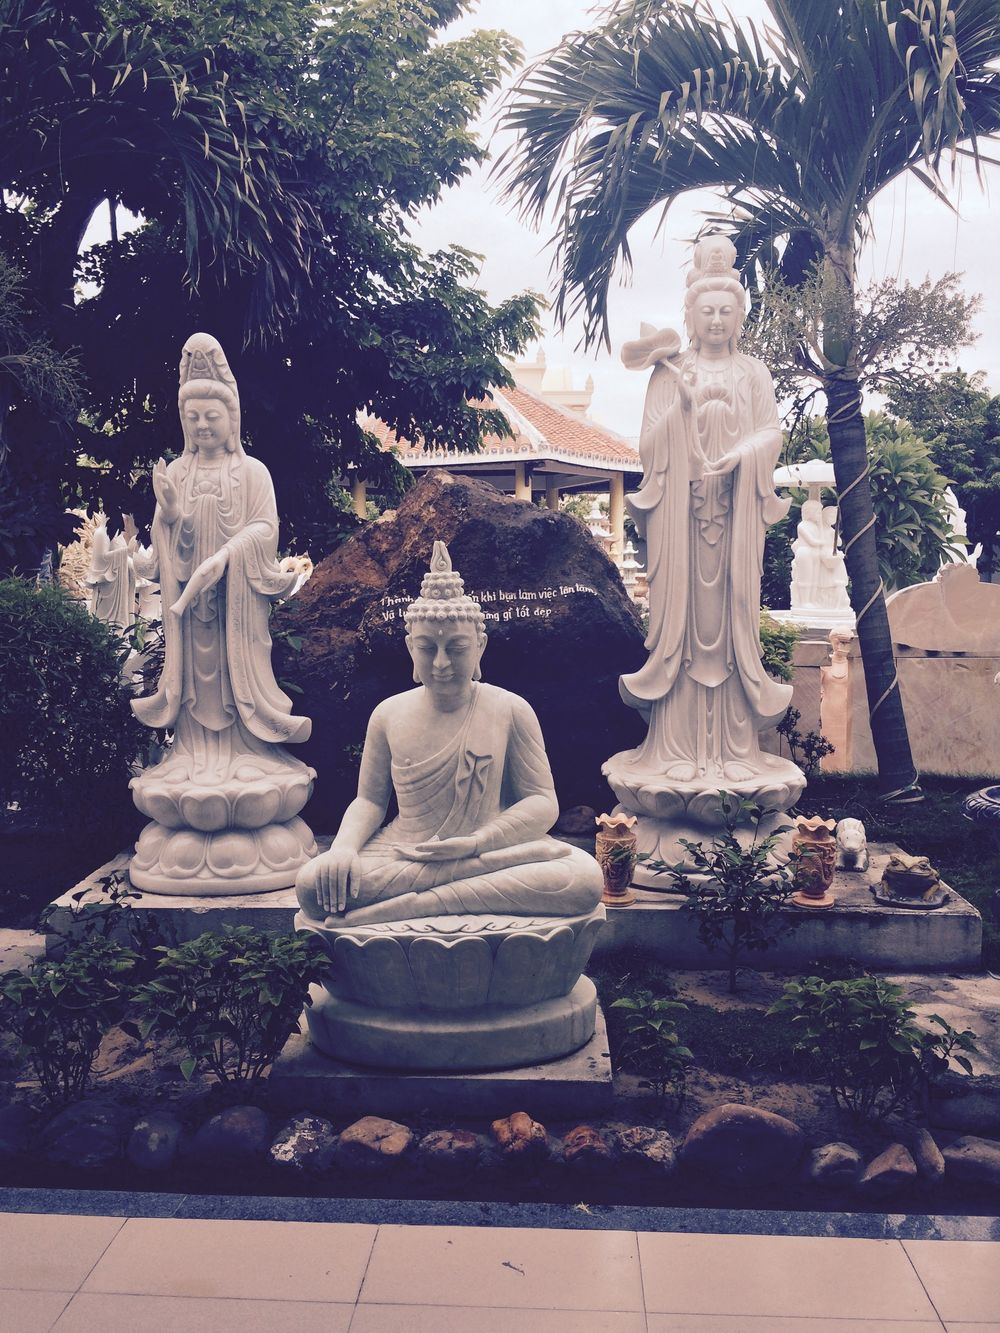 Religion Collection Danang, Vietnam Jewelry Shop Statues/sculptures Longing For Home